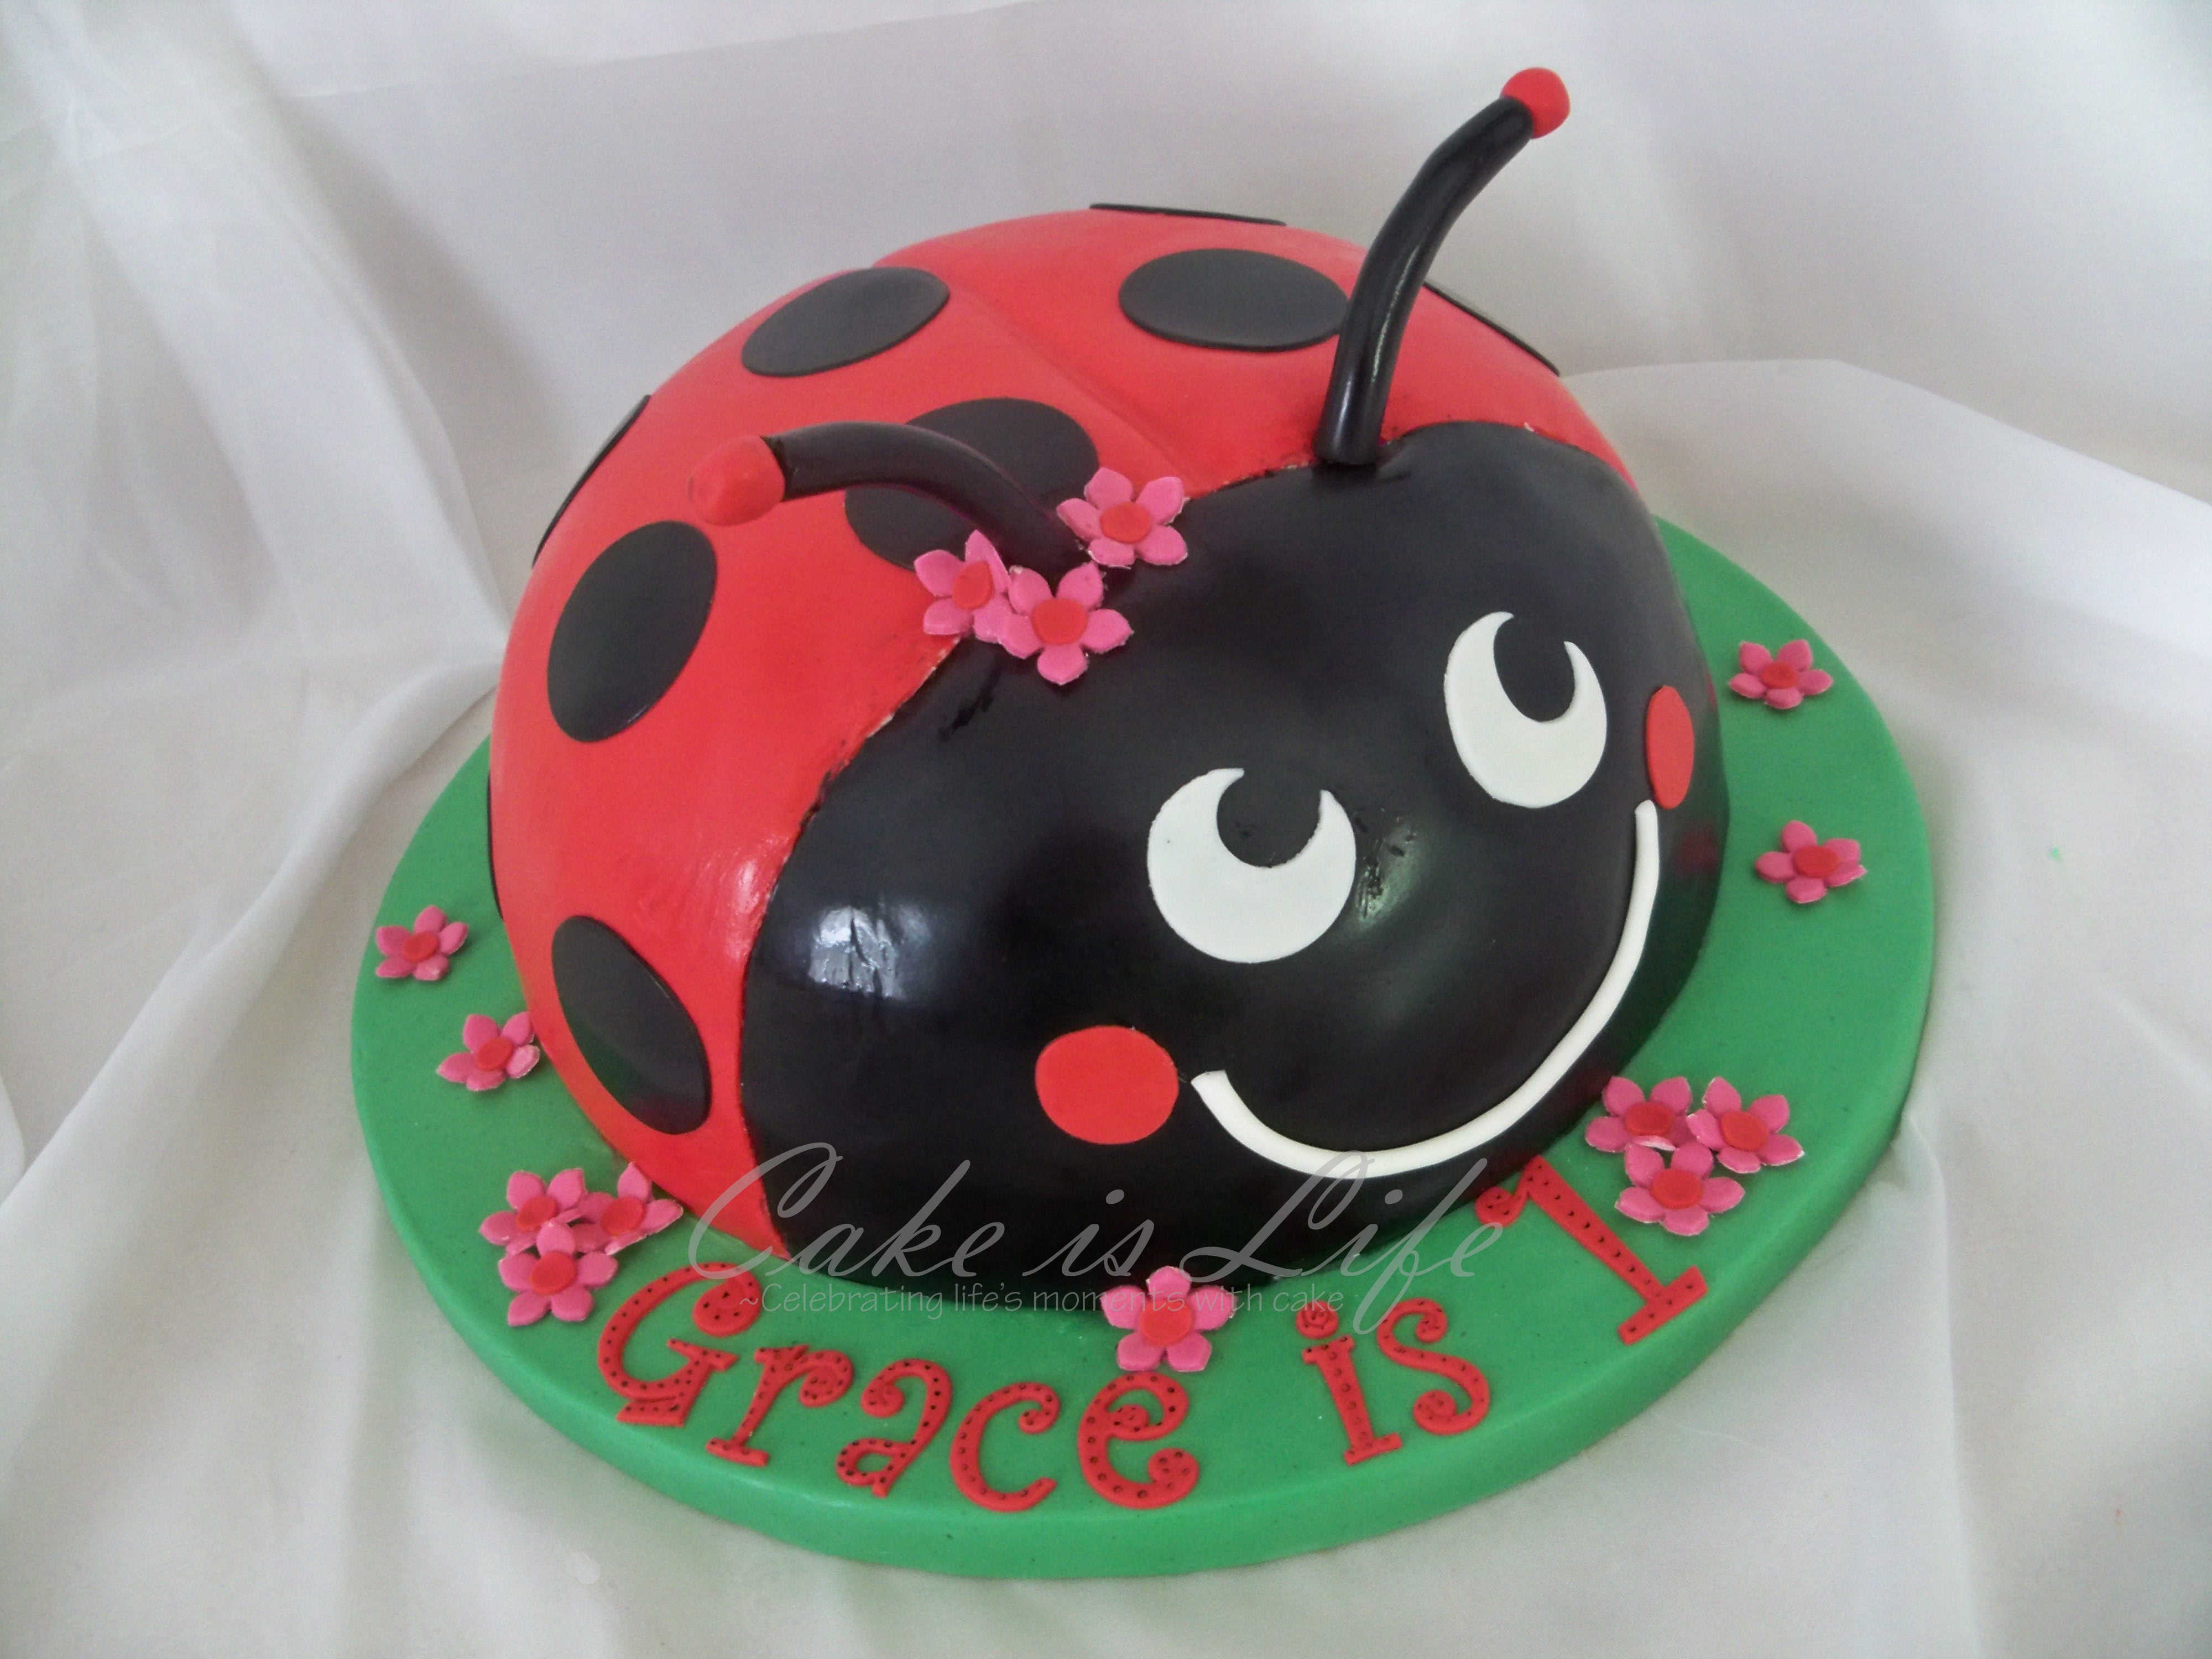 Ladybug Birthday Cake Ladybug Birthday Cake Cake Is Life